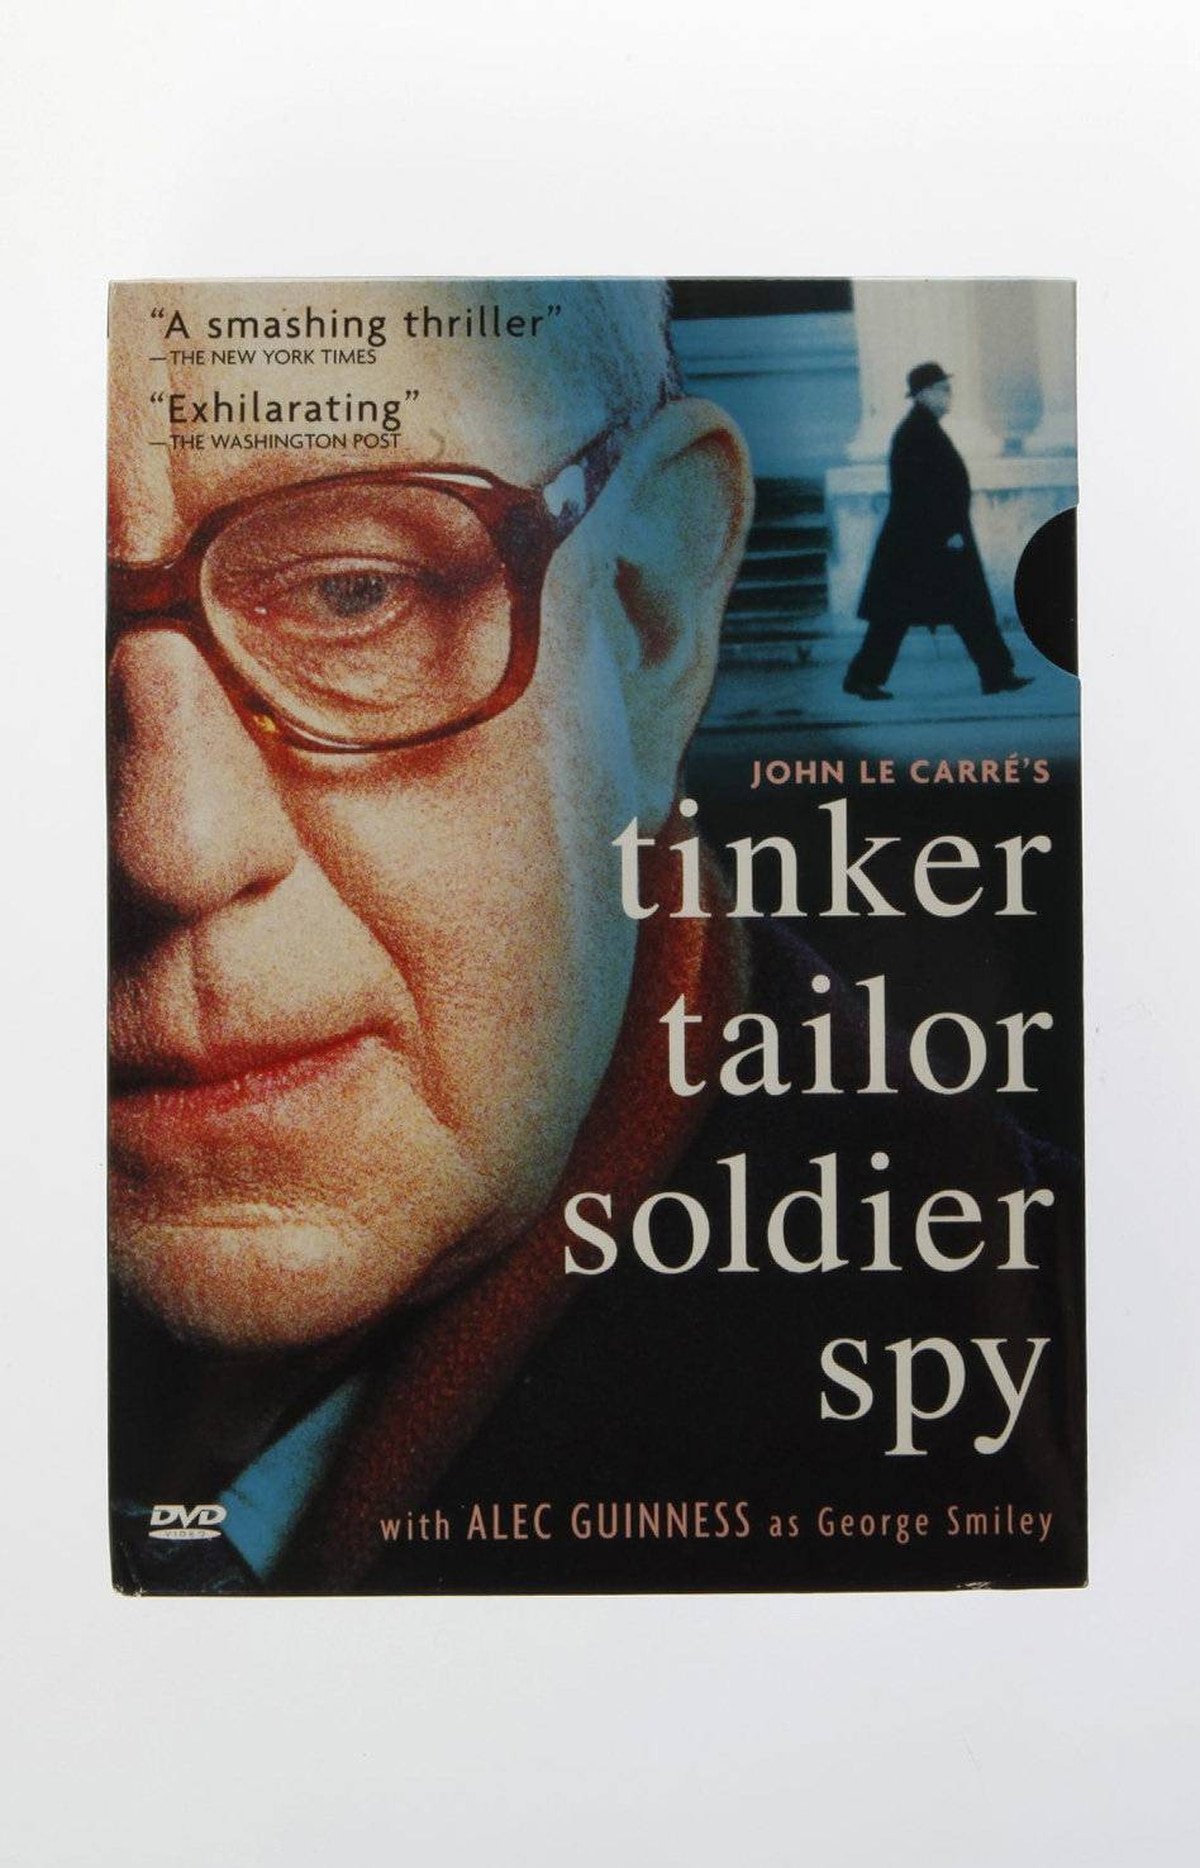 Tinker Tailor Soldier Spy This season sees the feature-film release of John le Carré's Cold War classic, with Gary Oldman as the agent George Smiley. The new movie is terrific, but so was a much fuller adaptation back in 1979, when the BBC aired a 7-part miniseries with the great Alec Guinness wearing the Smiley face. Both productions are steeped in the bureaucratic and nicotine-stained venality of the era. $44.95 at amazon.ca